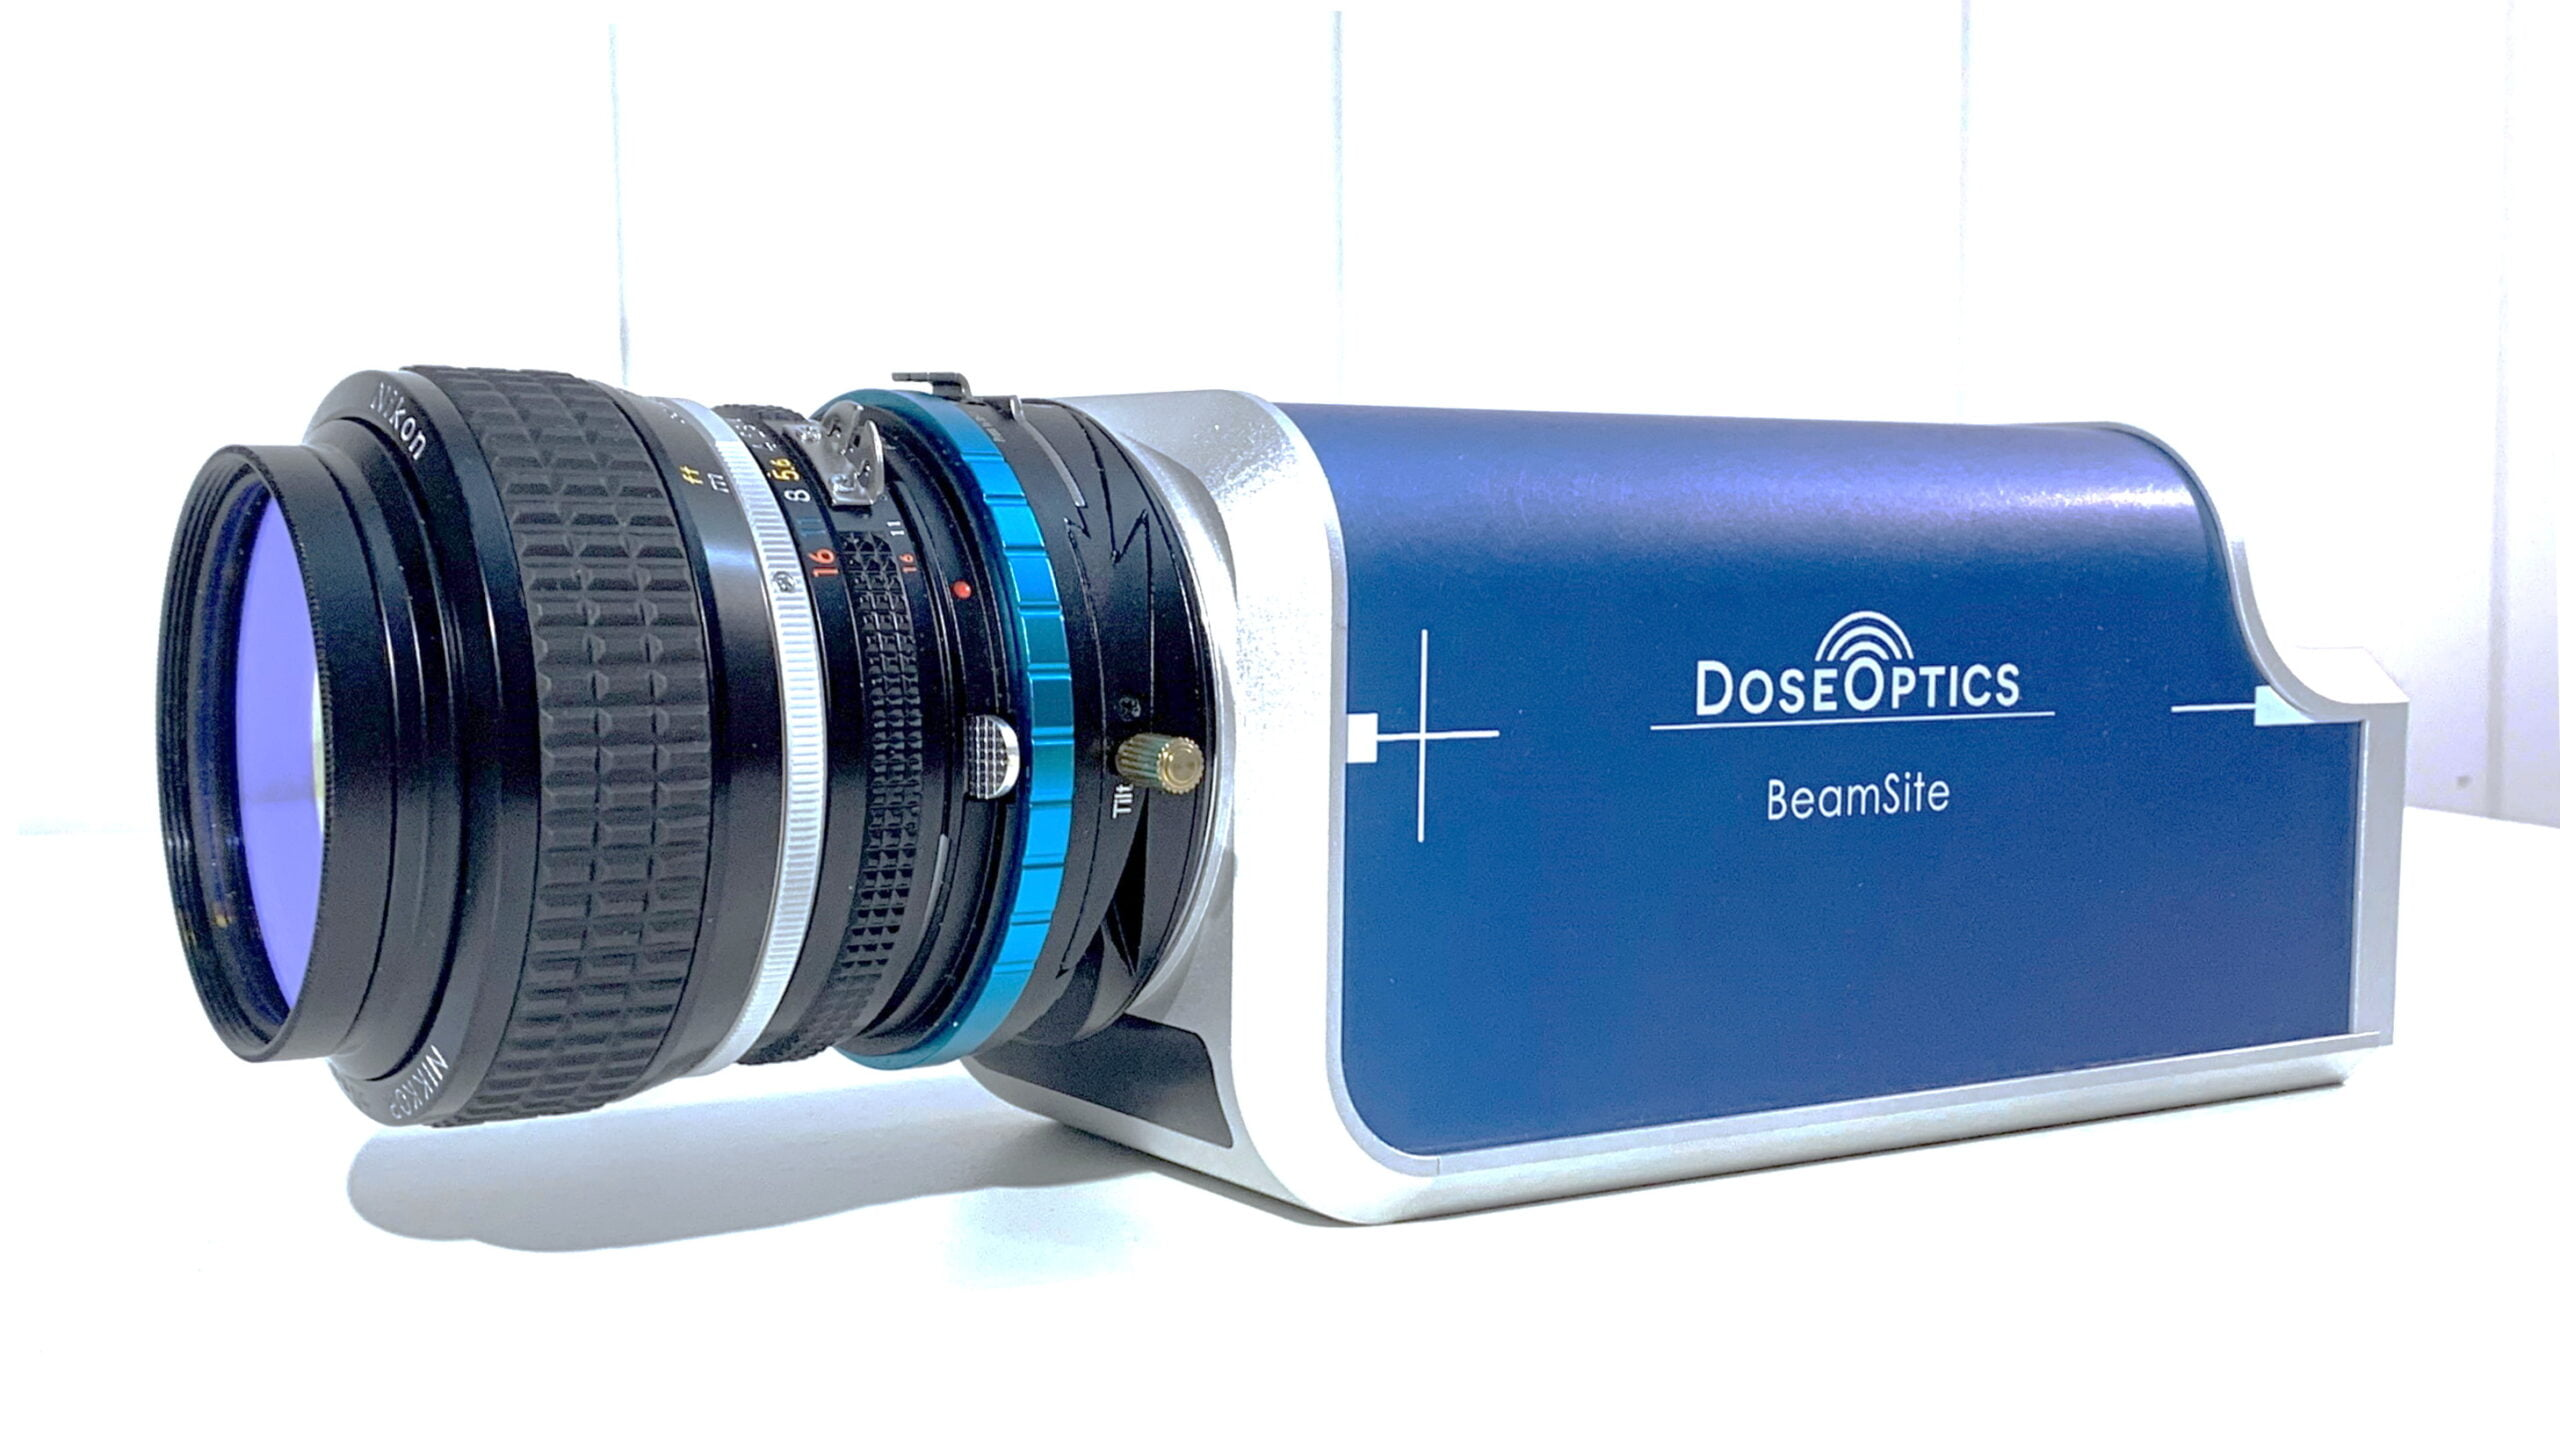 DoseOptics Receives FDA 510(k) Clearance for BeamSite™